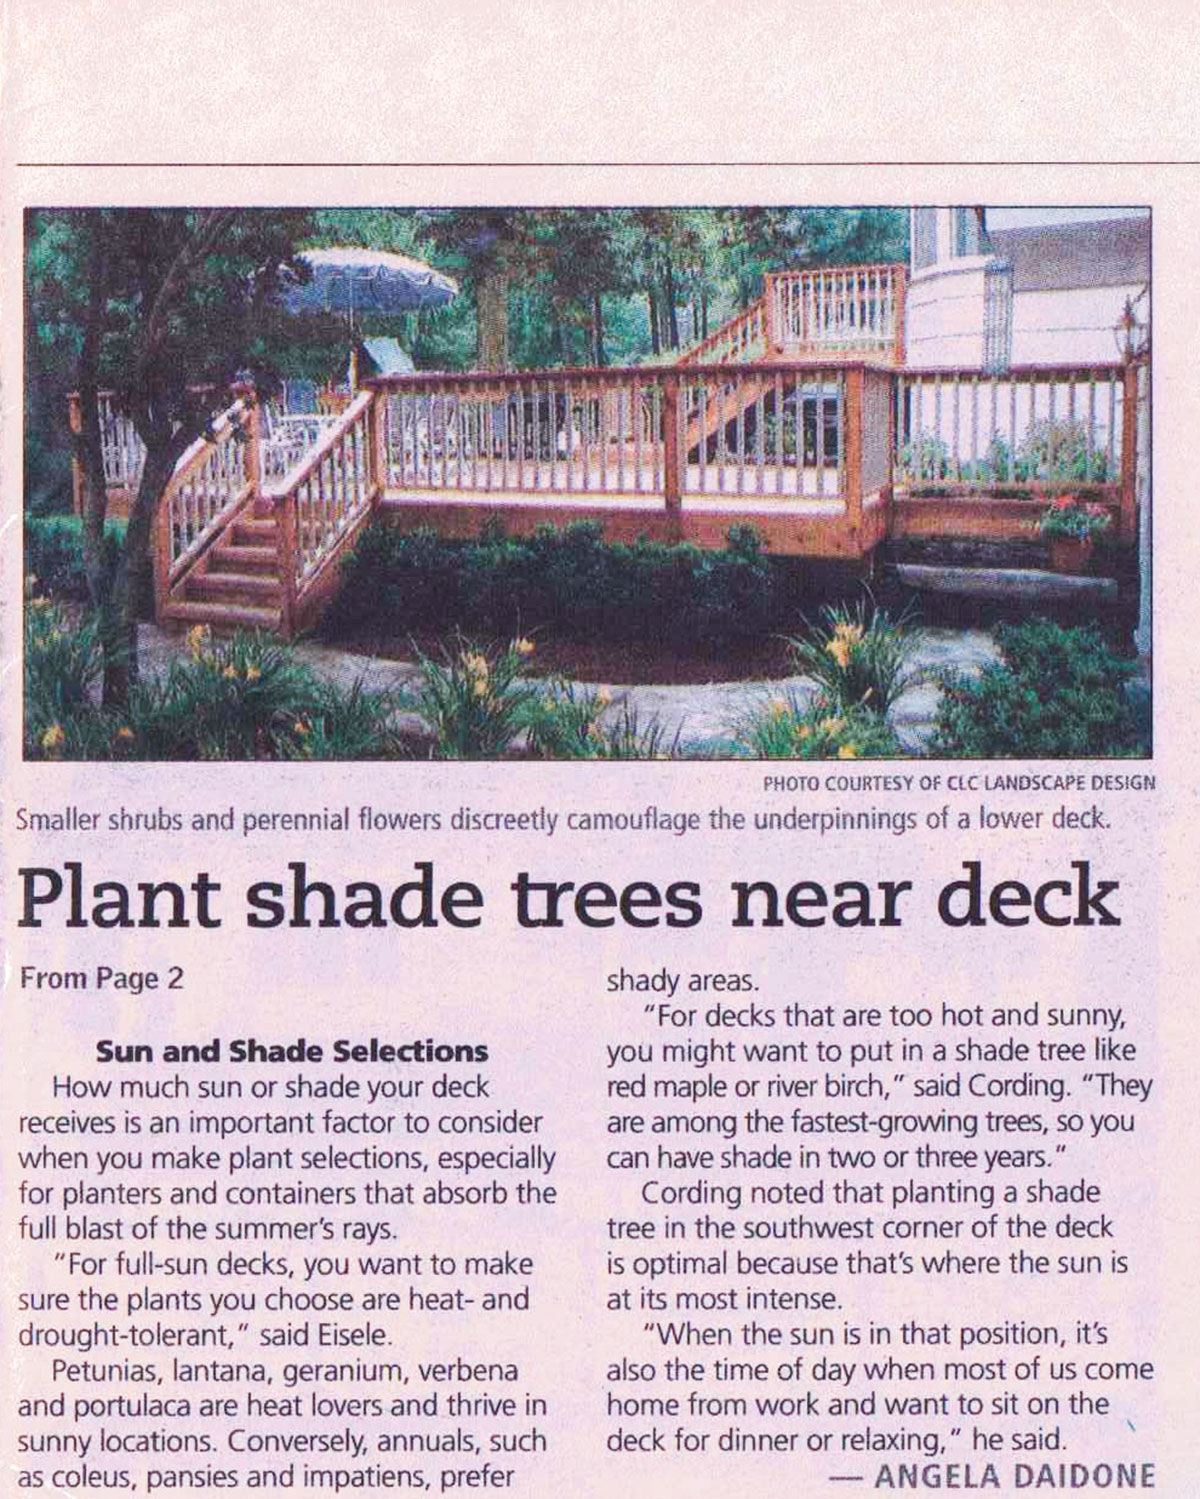 The Record - Plantings Around NJ Deck (page 2)